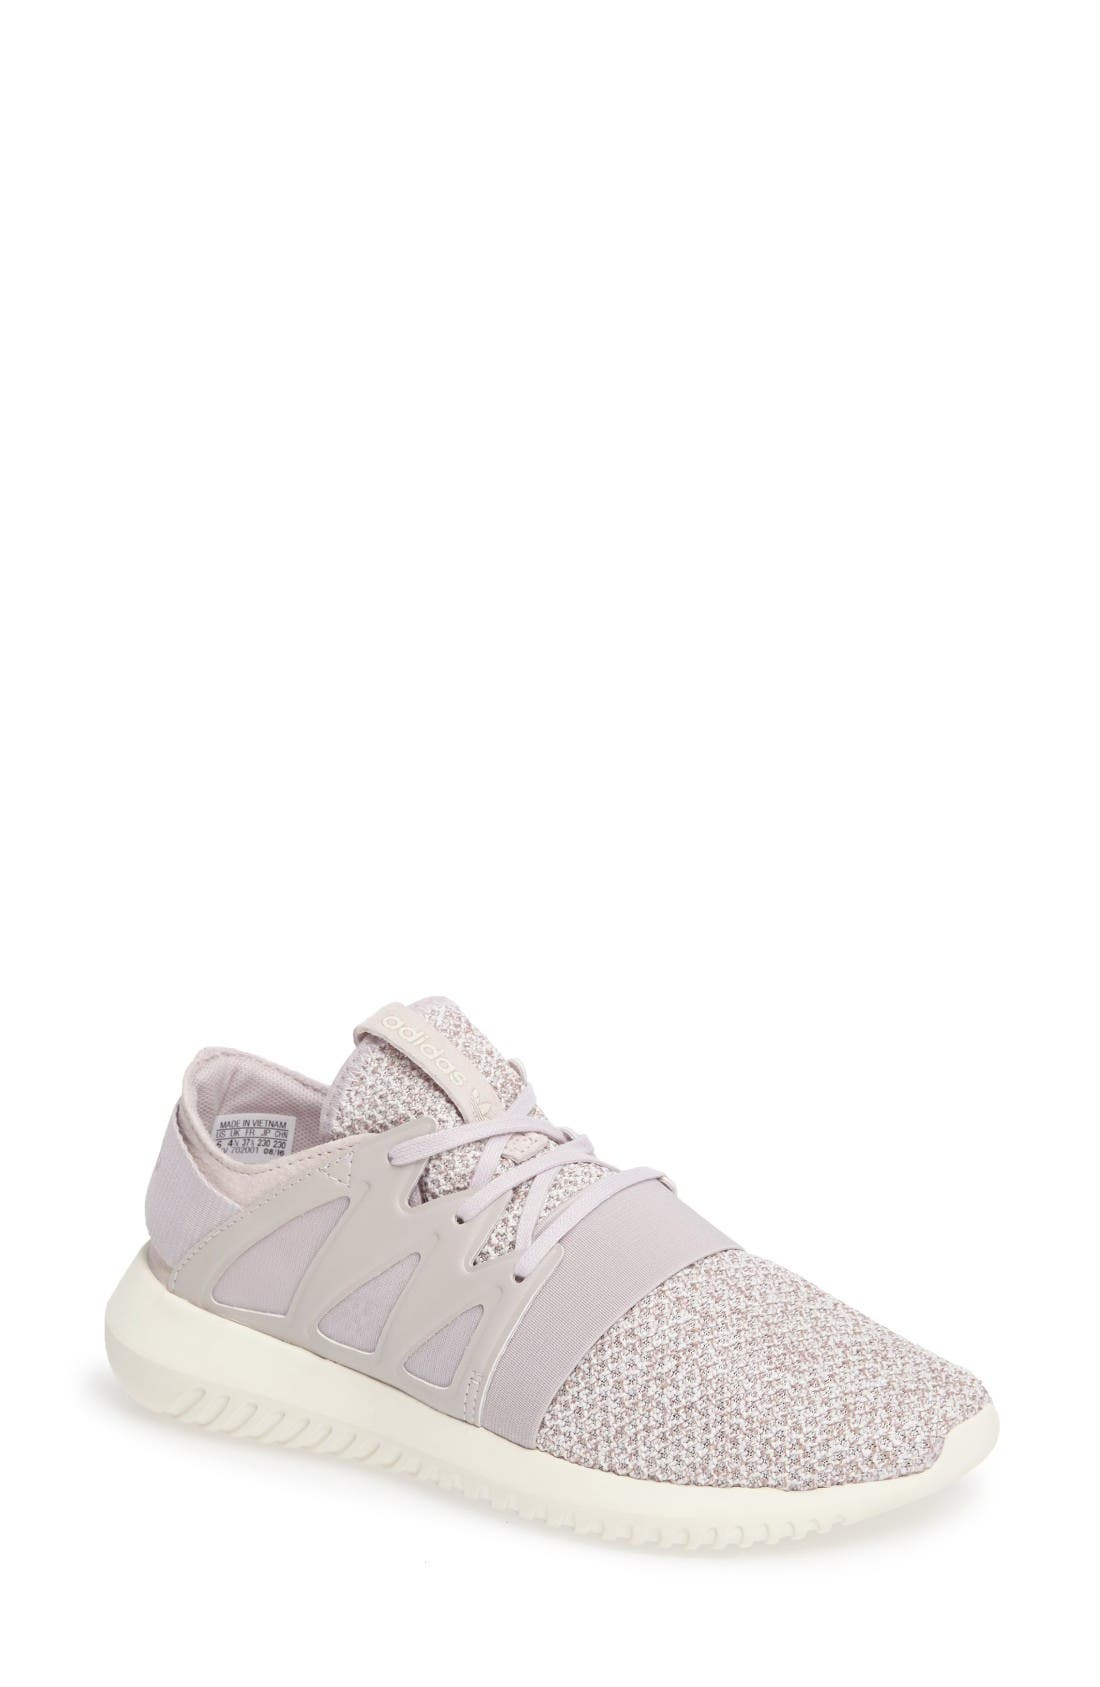 Alternate Image 1 Selected - adidas Tubular Viral Knit Sneaker (Women)